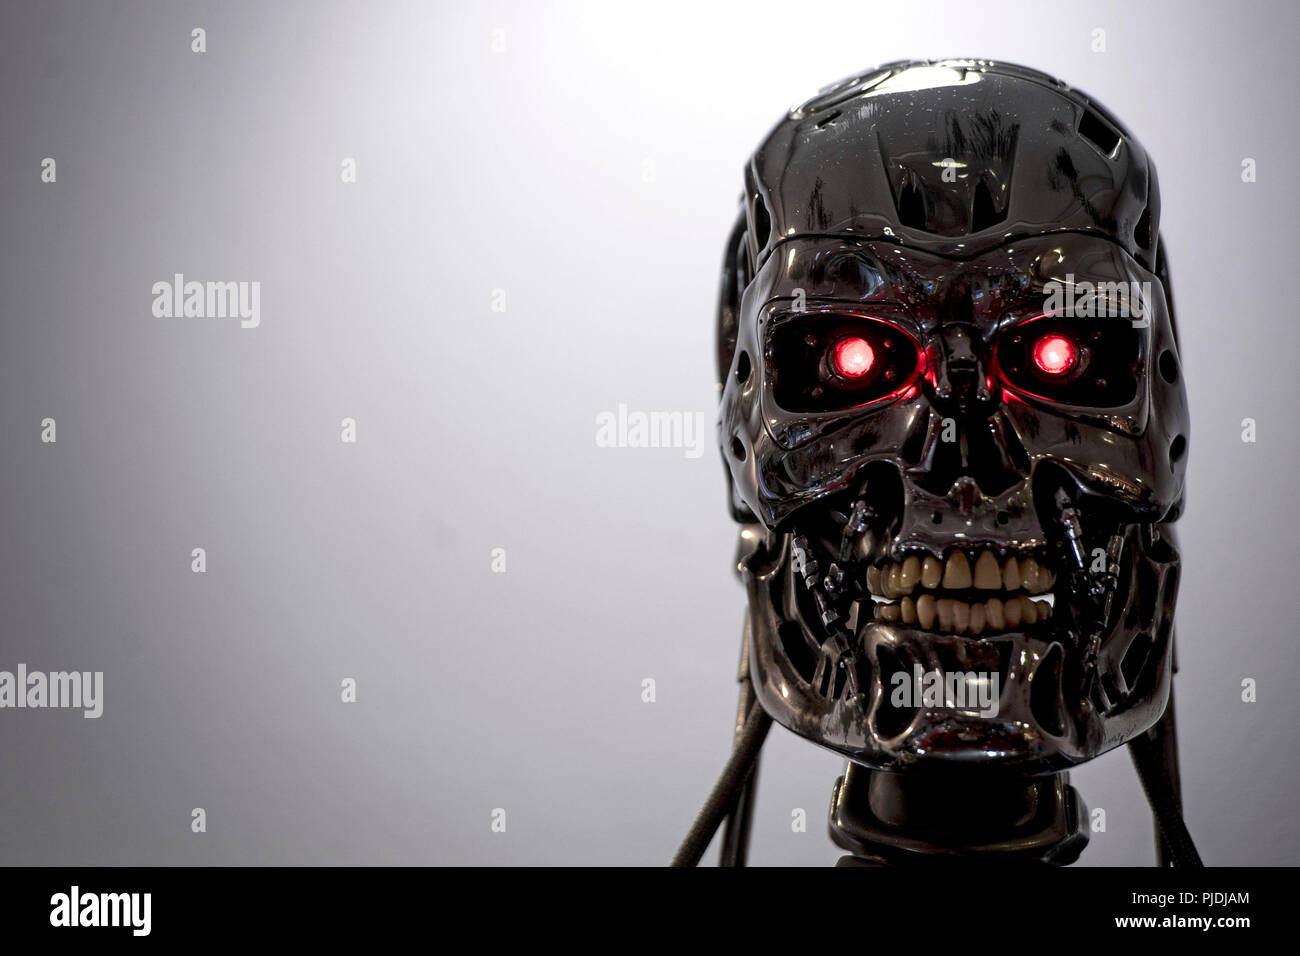 A T-800 Endoskeleton used in Terminator 2: Judgement Day (1991) at the Prop Store film memorabilia exhibition at the BFI IMAX at Waterloo in central London. - Stock Image